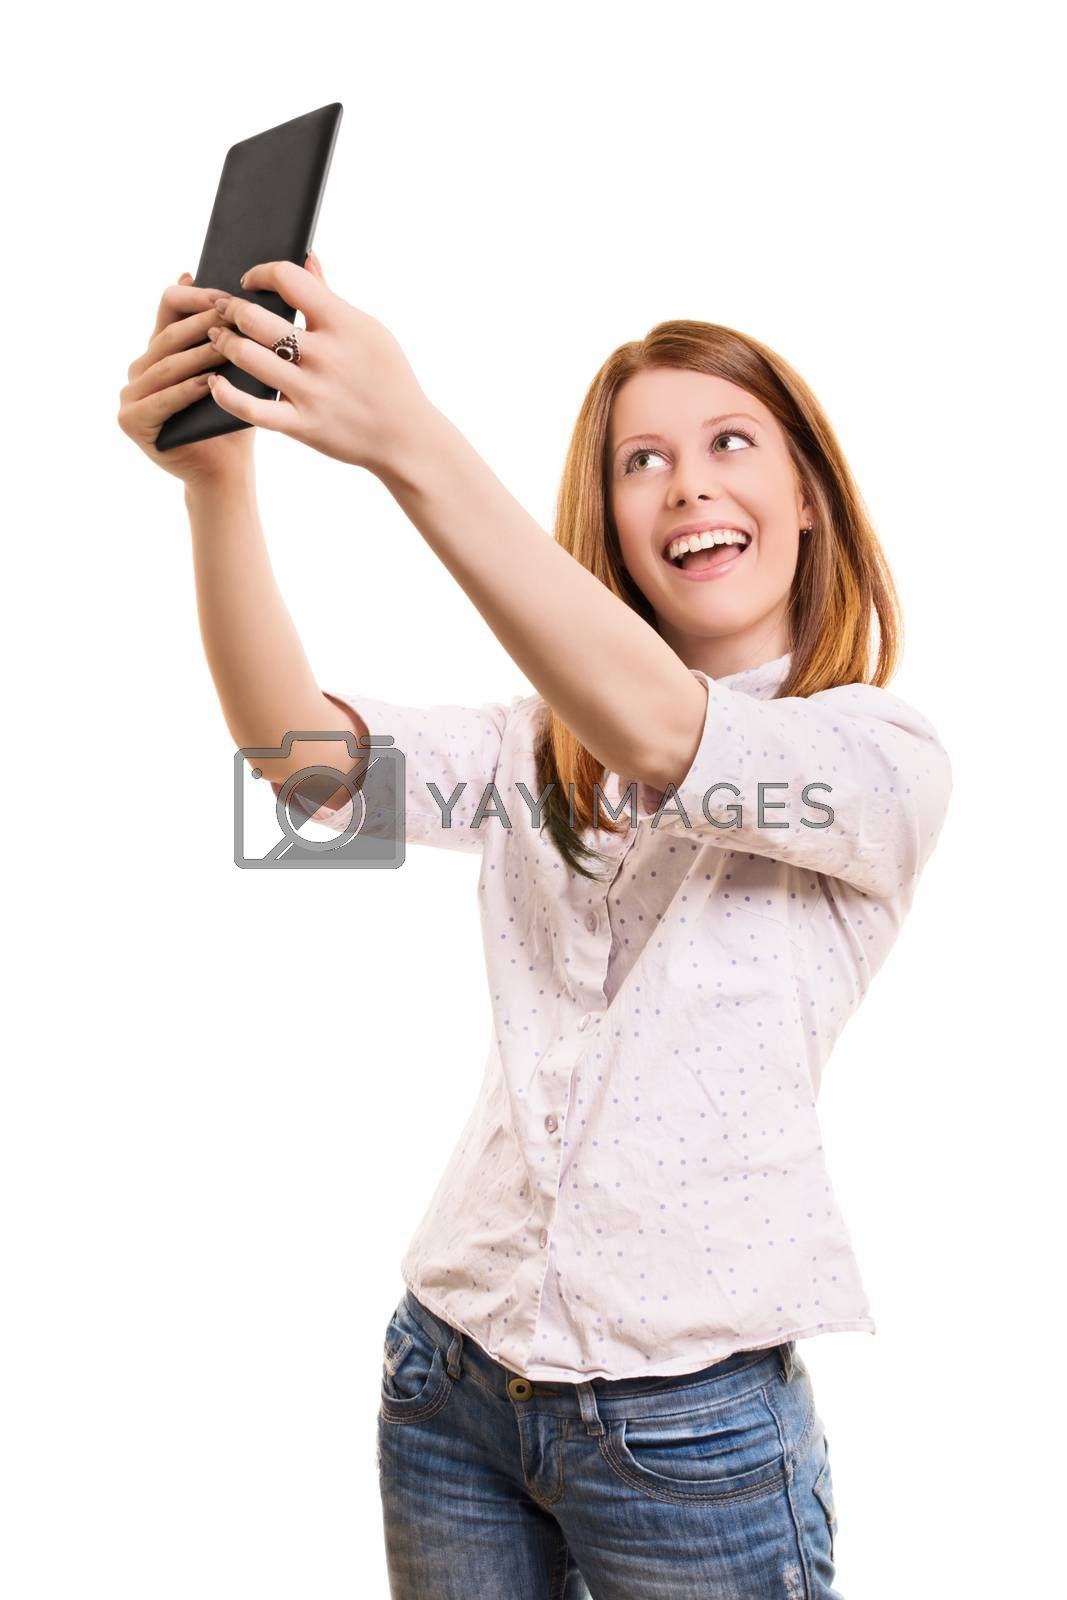 A portrait of a young beautiful girl taking a selfie with her tablet, isolated on white background.